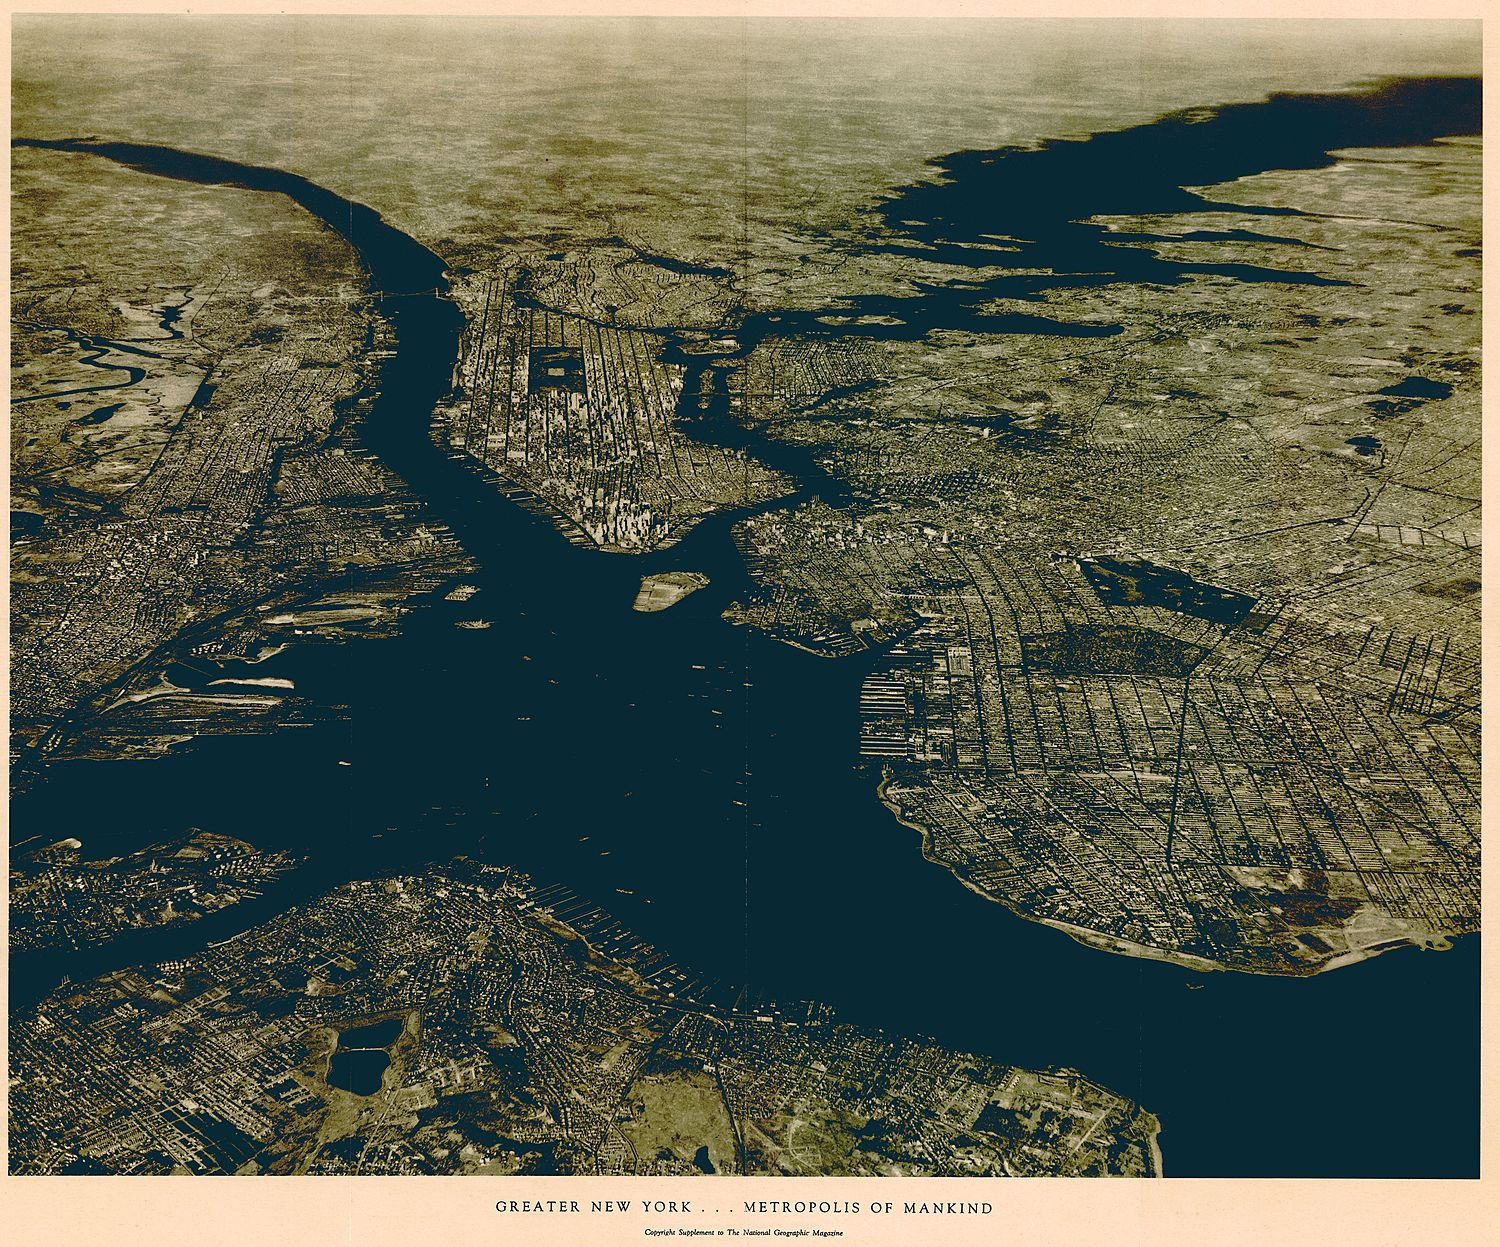 Greater New York ... Metropolis of Mankind, National Geographic, 1933